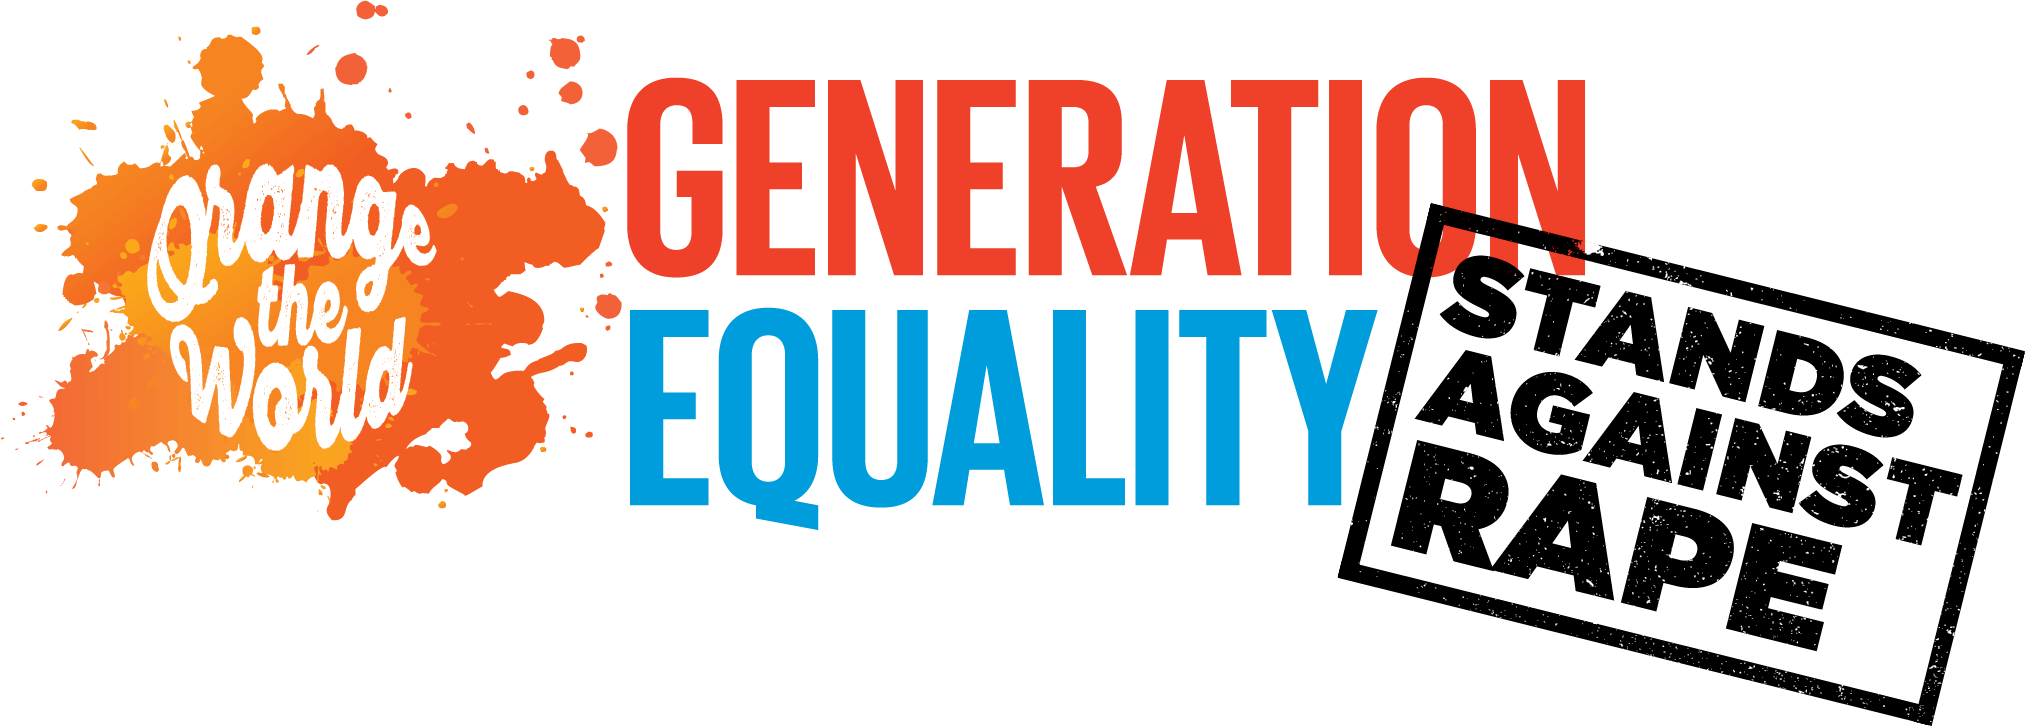 2019 Generation Equality